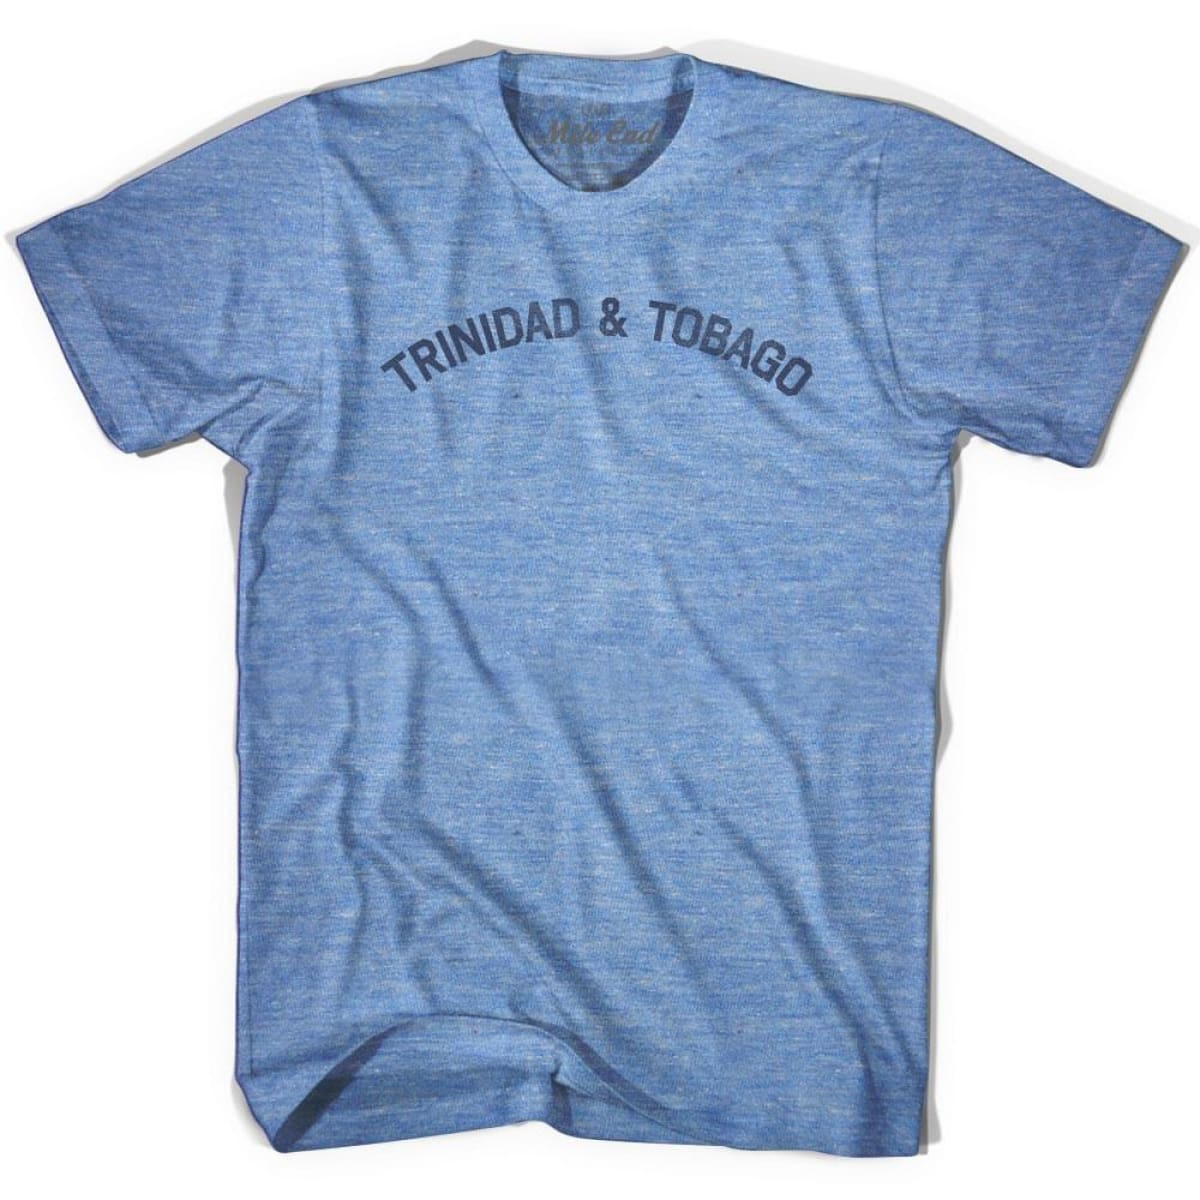 Trinidad & Tobago City Vintage T-shirt - Athletic Blue / Adult X-Small - Mile End City